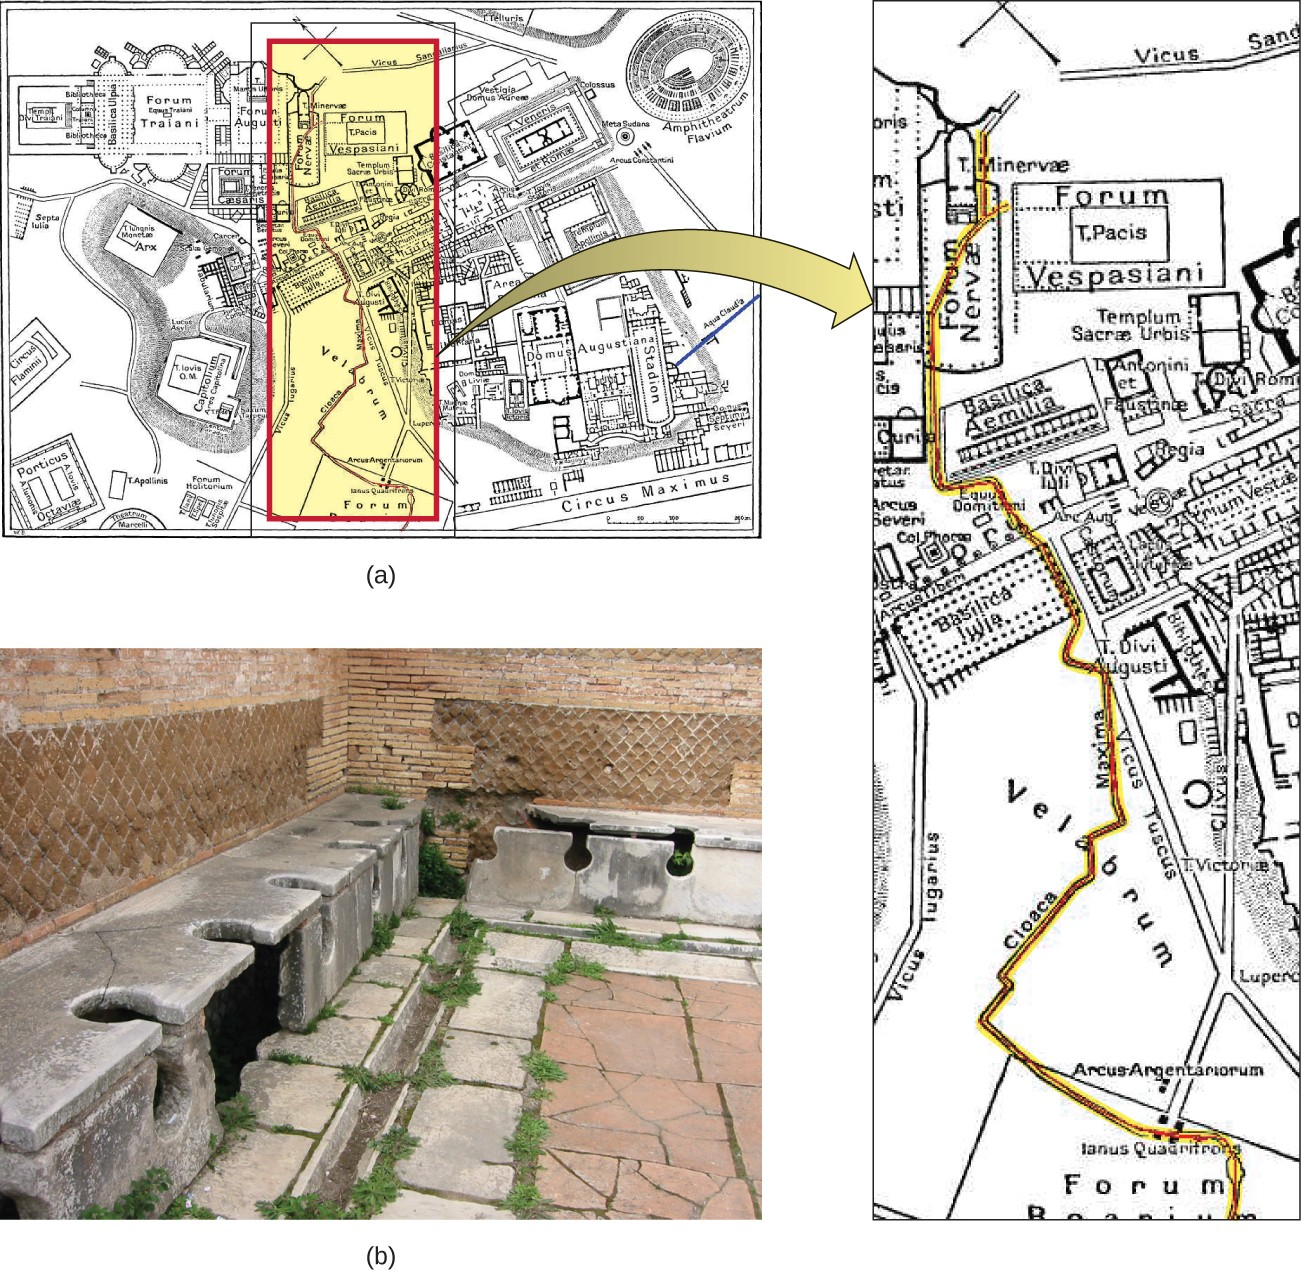 "(a) The Cloaca Maxima, or ""Greatest Sewer"" (shown in red), ran through ancient Rome. It was an engineering marvel that carried waste away from the city and into the river Tiber. (b) These ancient latrines emptied into the Cloaca Maxima."